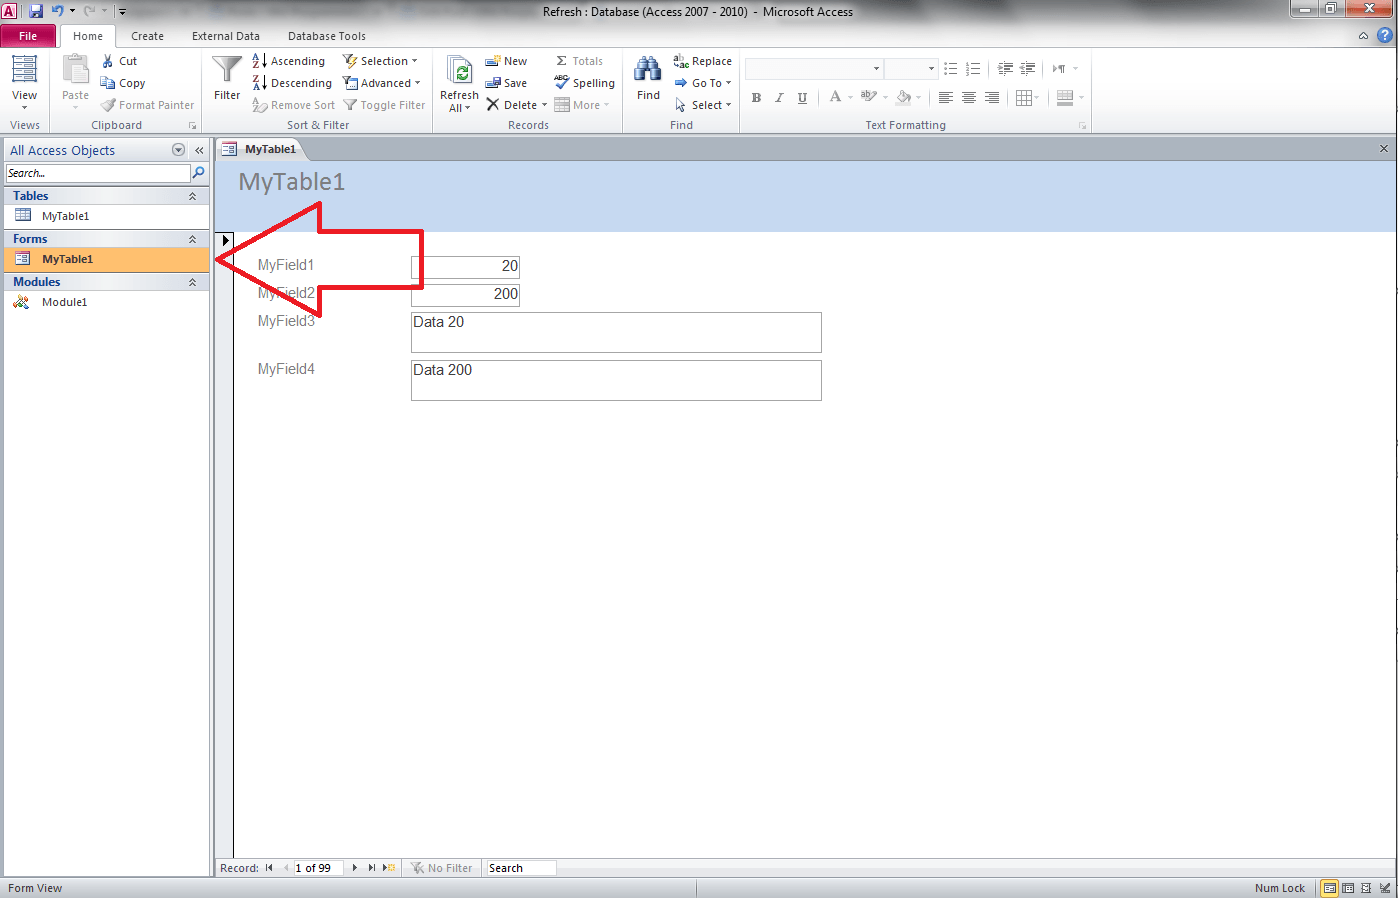 Access Vba Referencing Forms